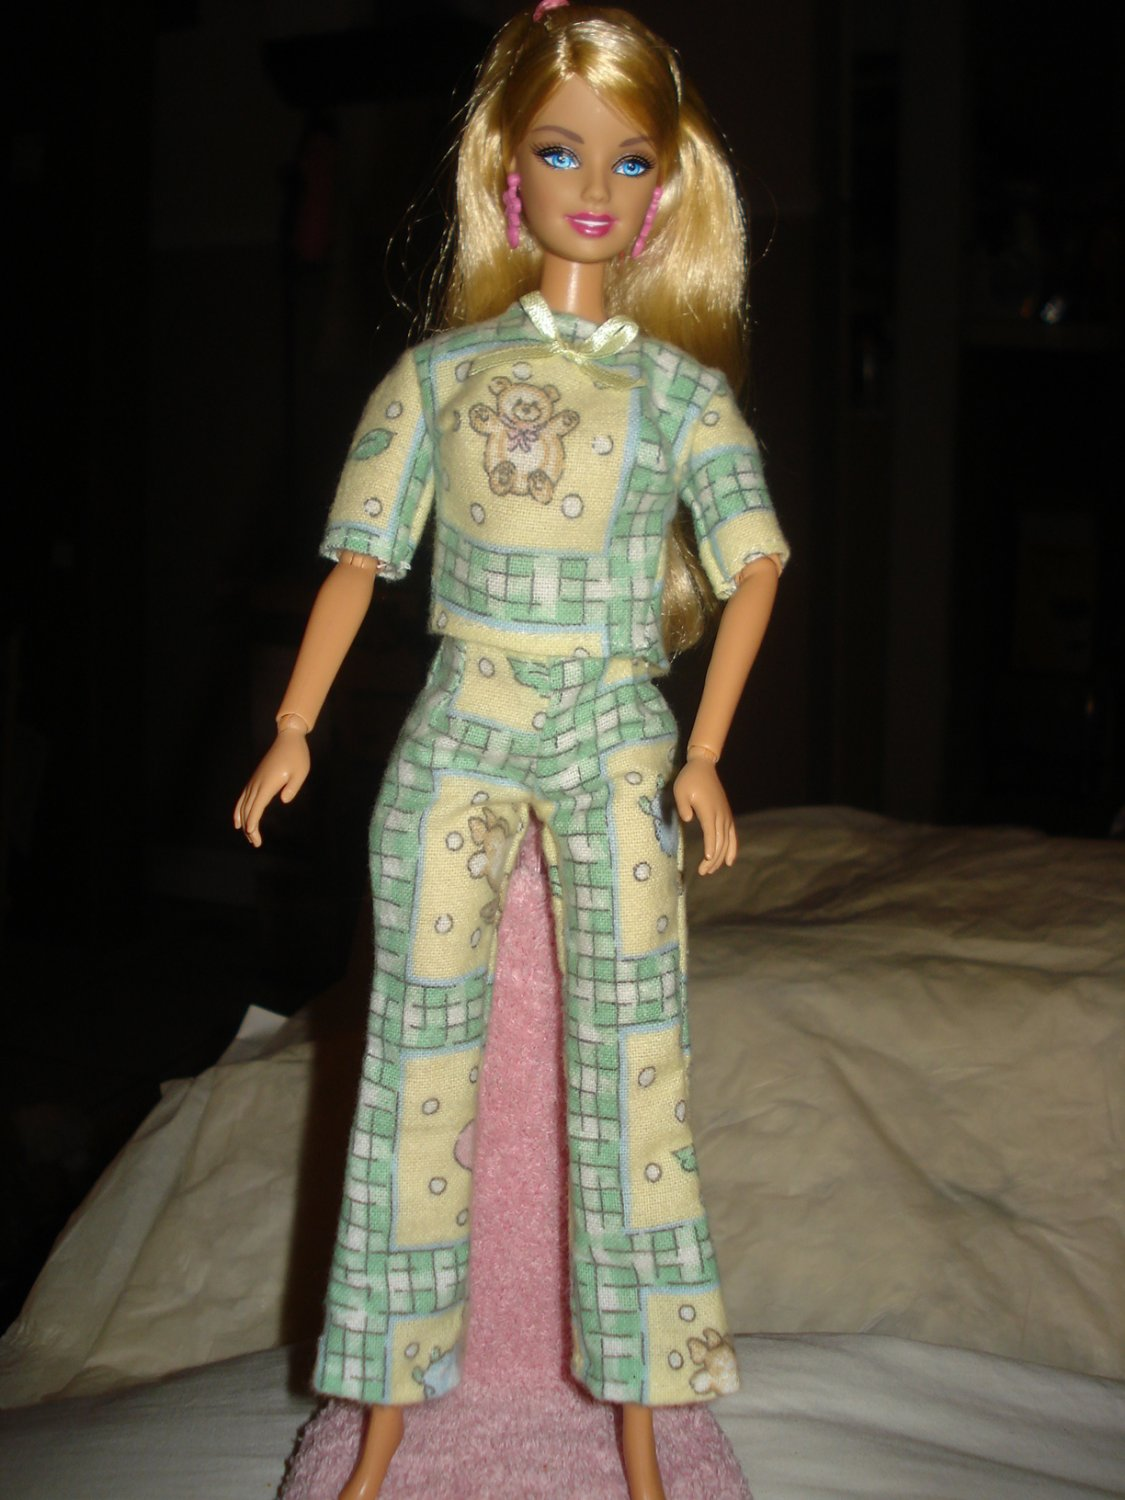 Pajamas in warn flannel for Barbie - ed57